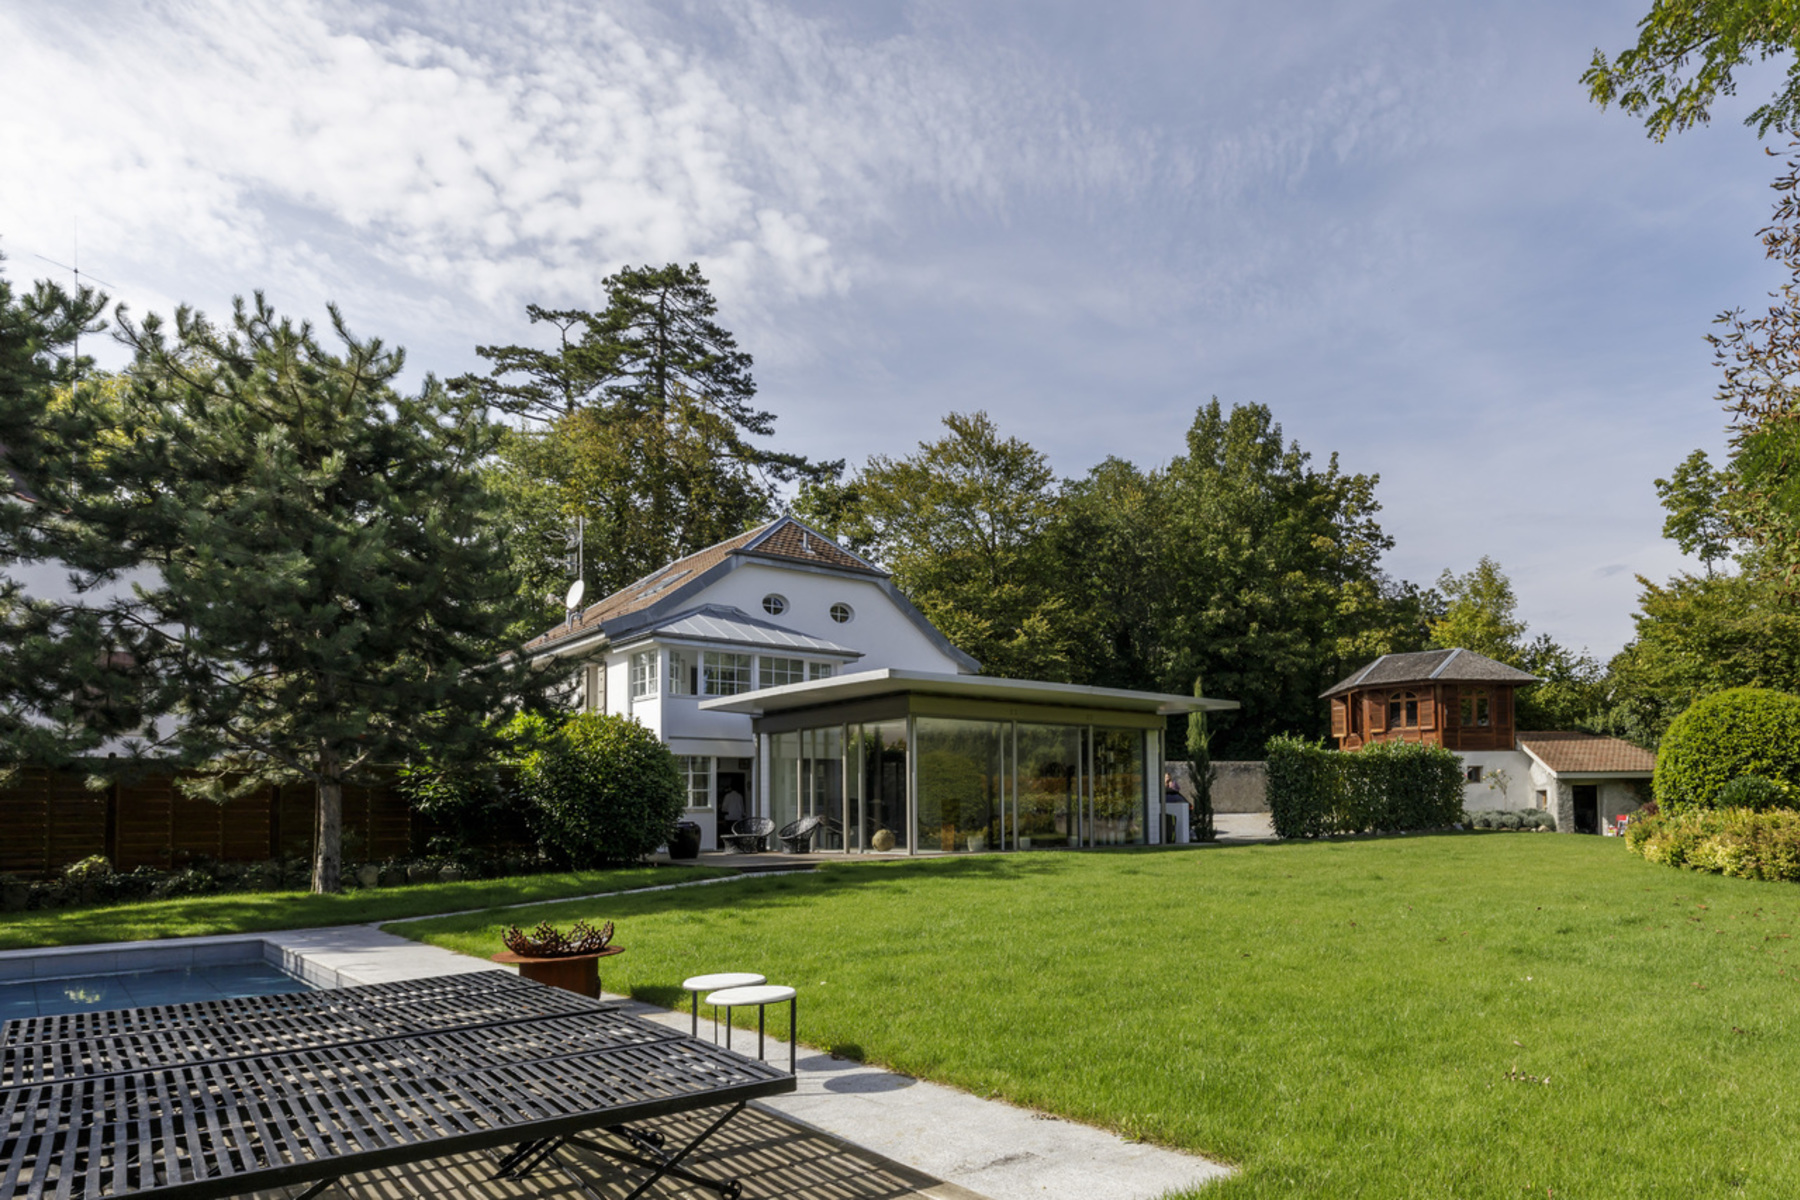 Single Family Home for Sale at Property with exceptional character Conches Conches, Geneva, 1231 Switzerland